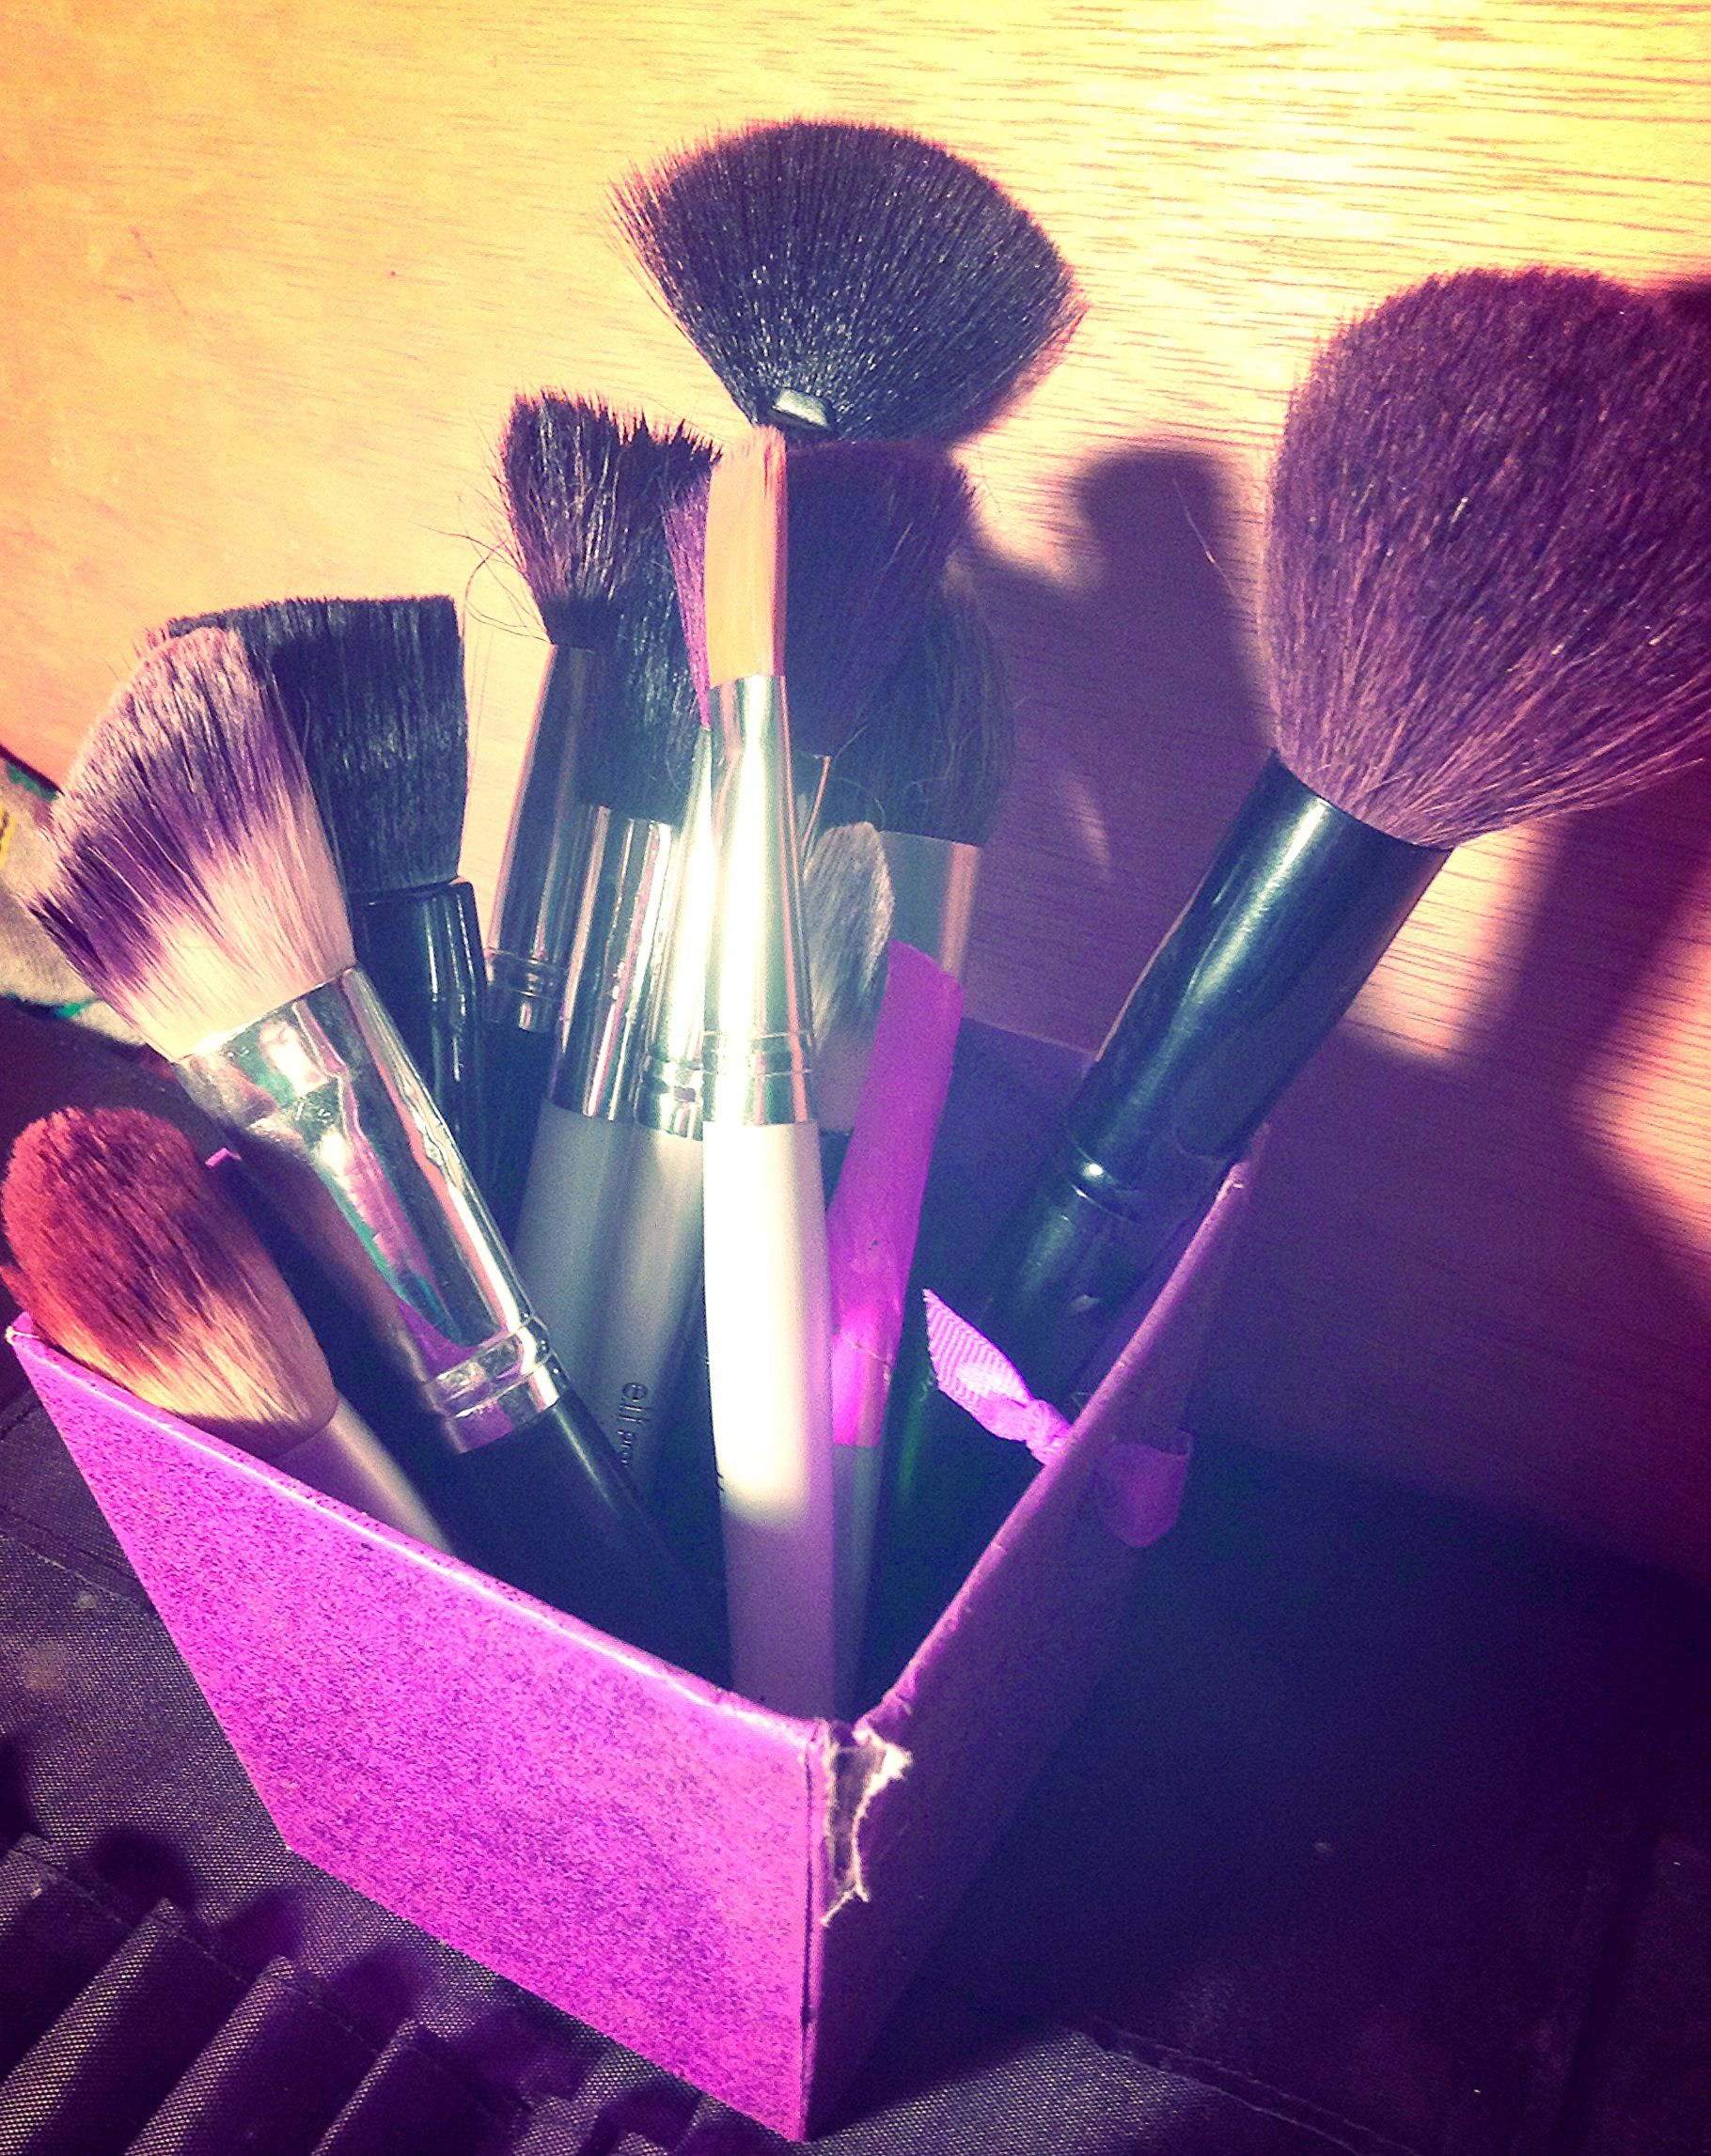 Squeaky clean makeup brushes with Dawn dish soap! By